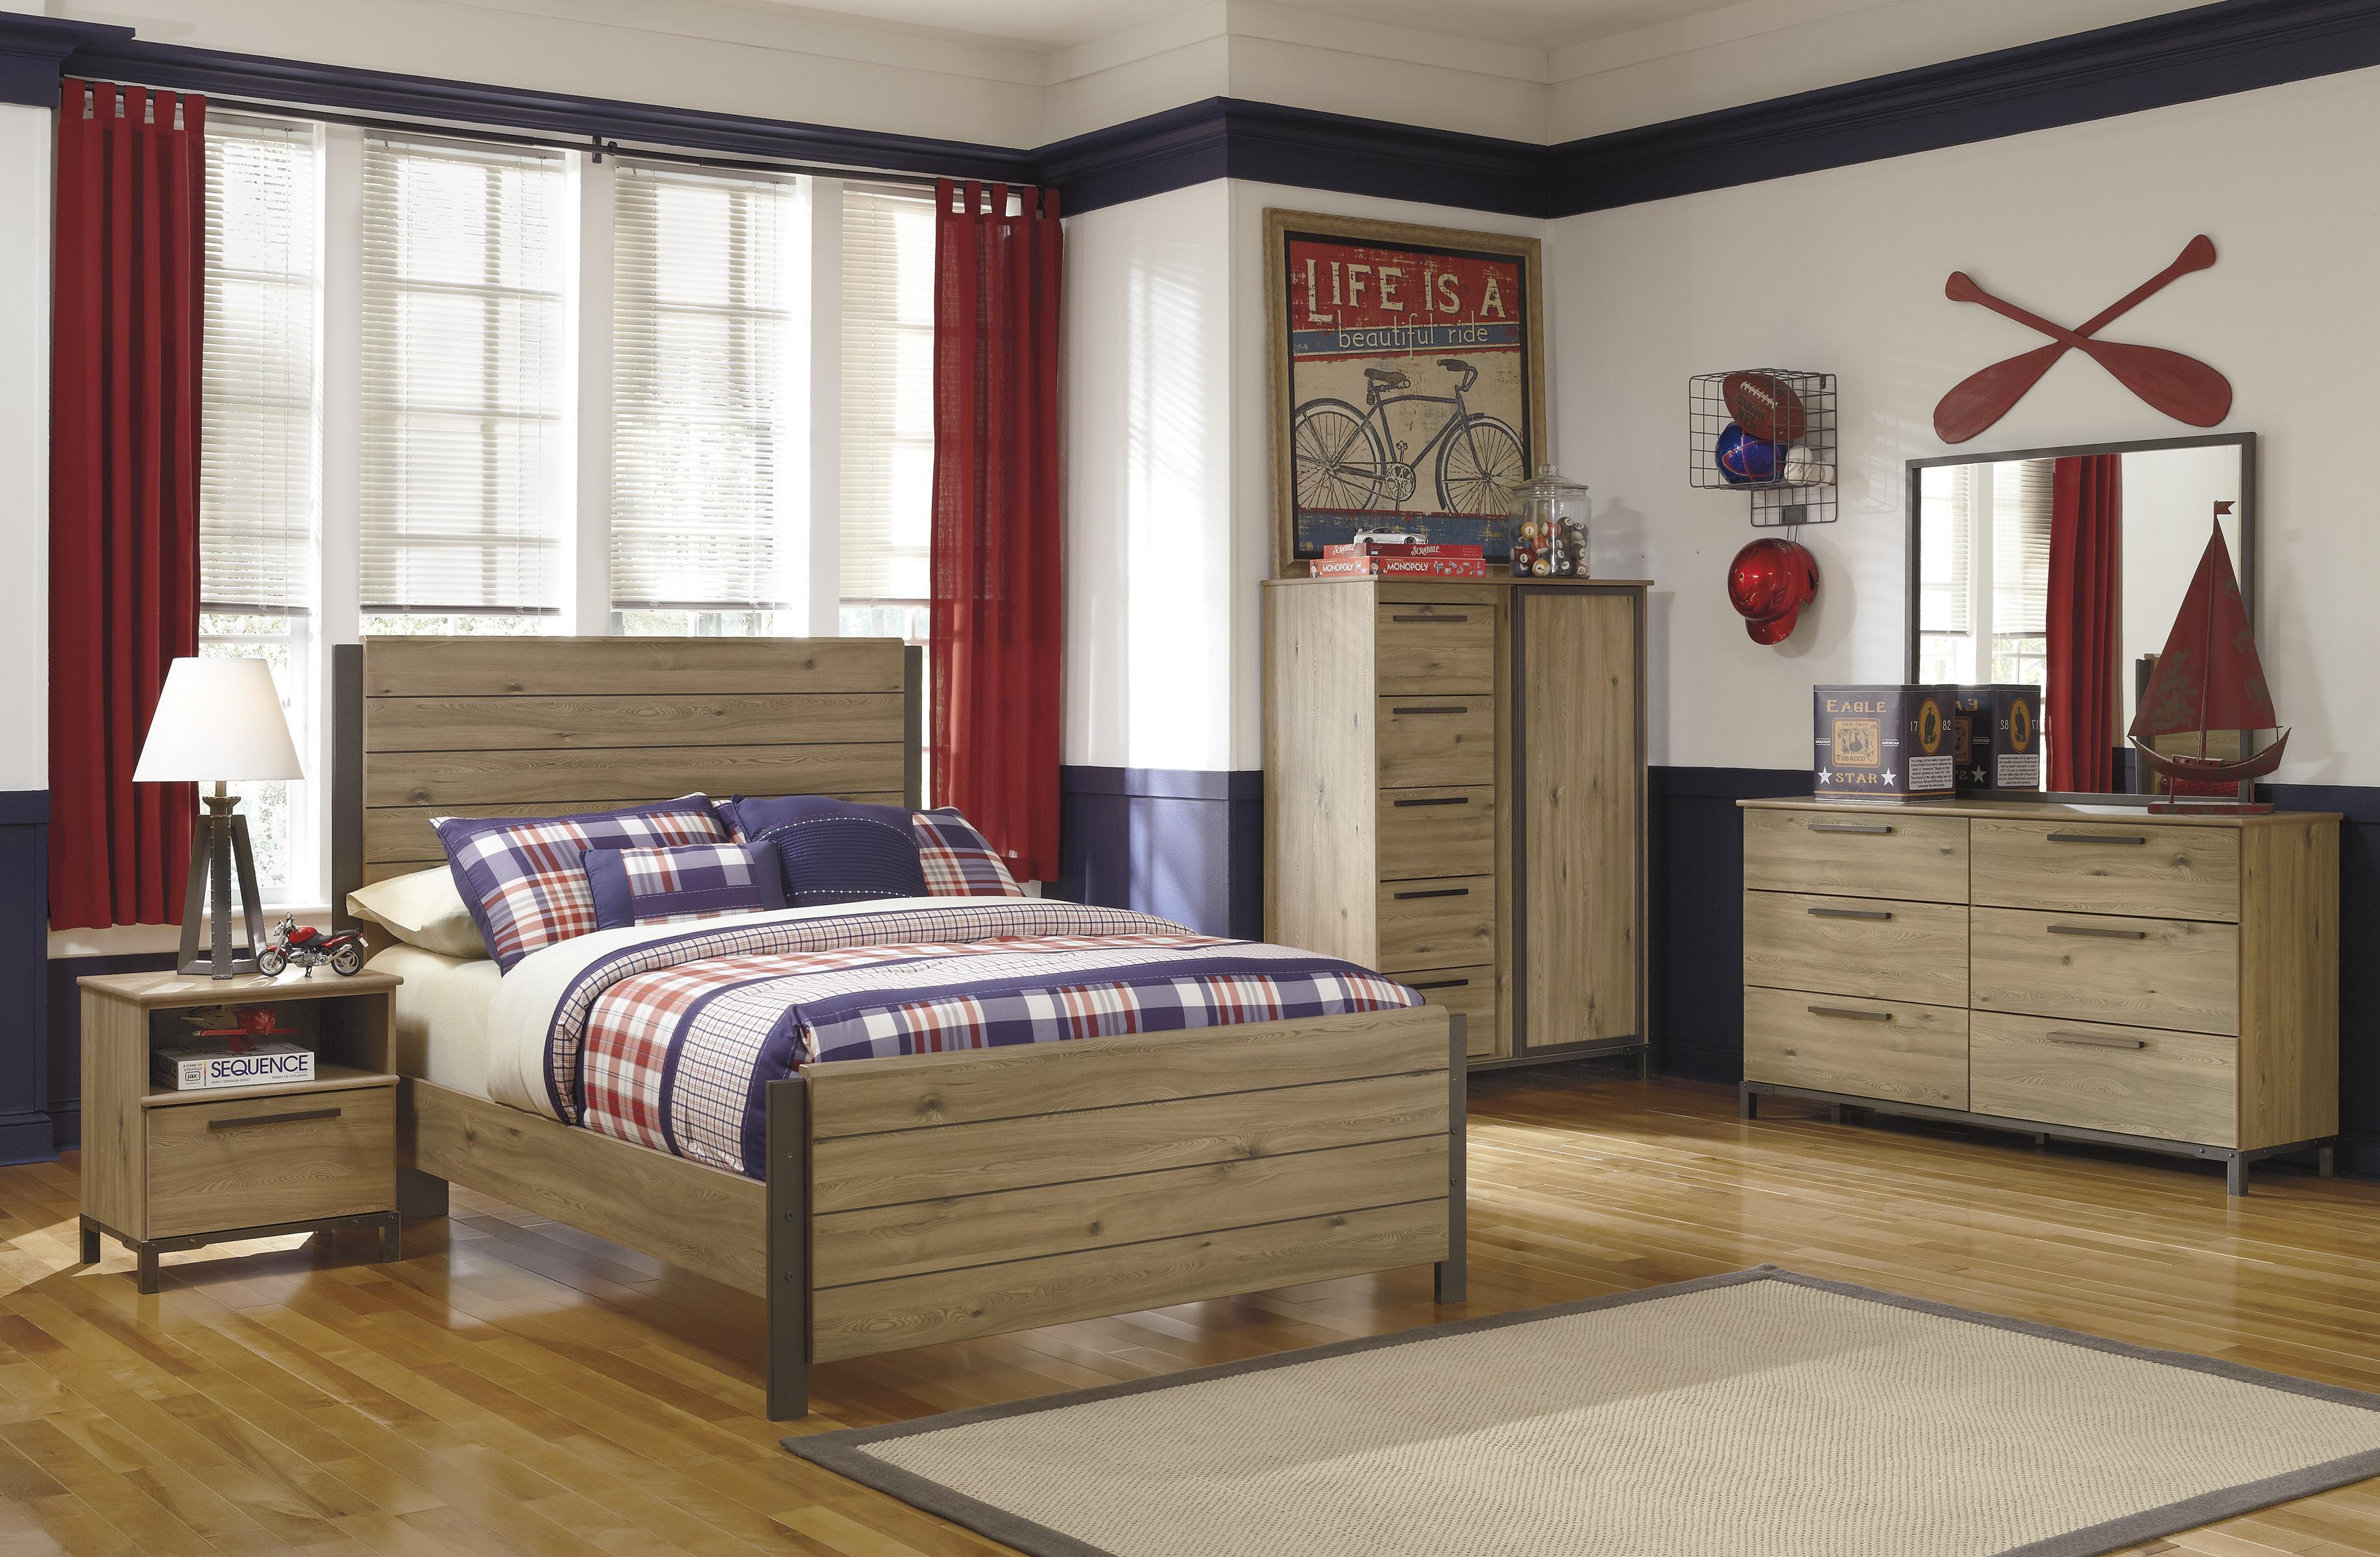 Signature Design by Ashley Dexifield Full Bedroom Set Group - Item Number: B298 F Bedroom Group 3 No Chest